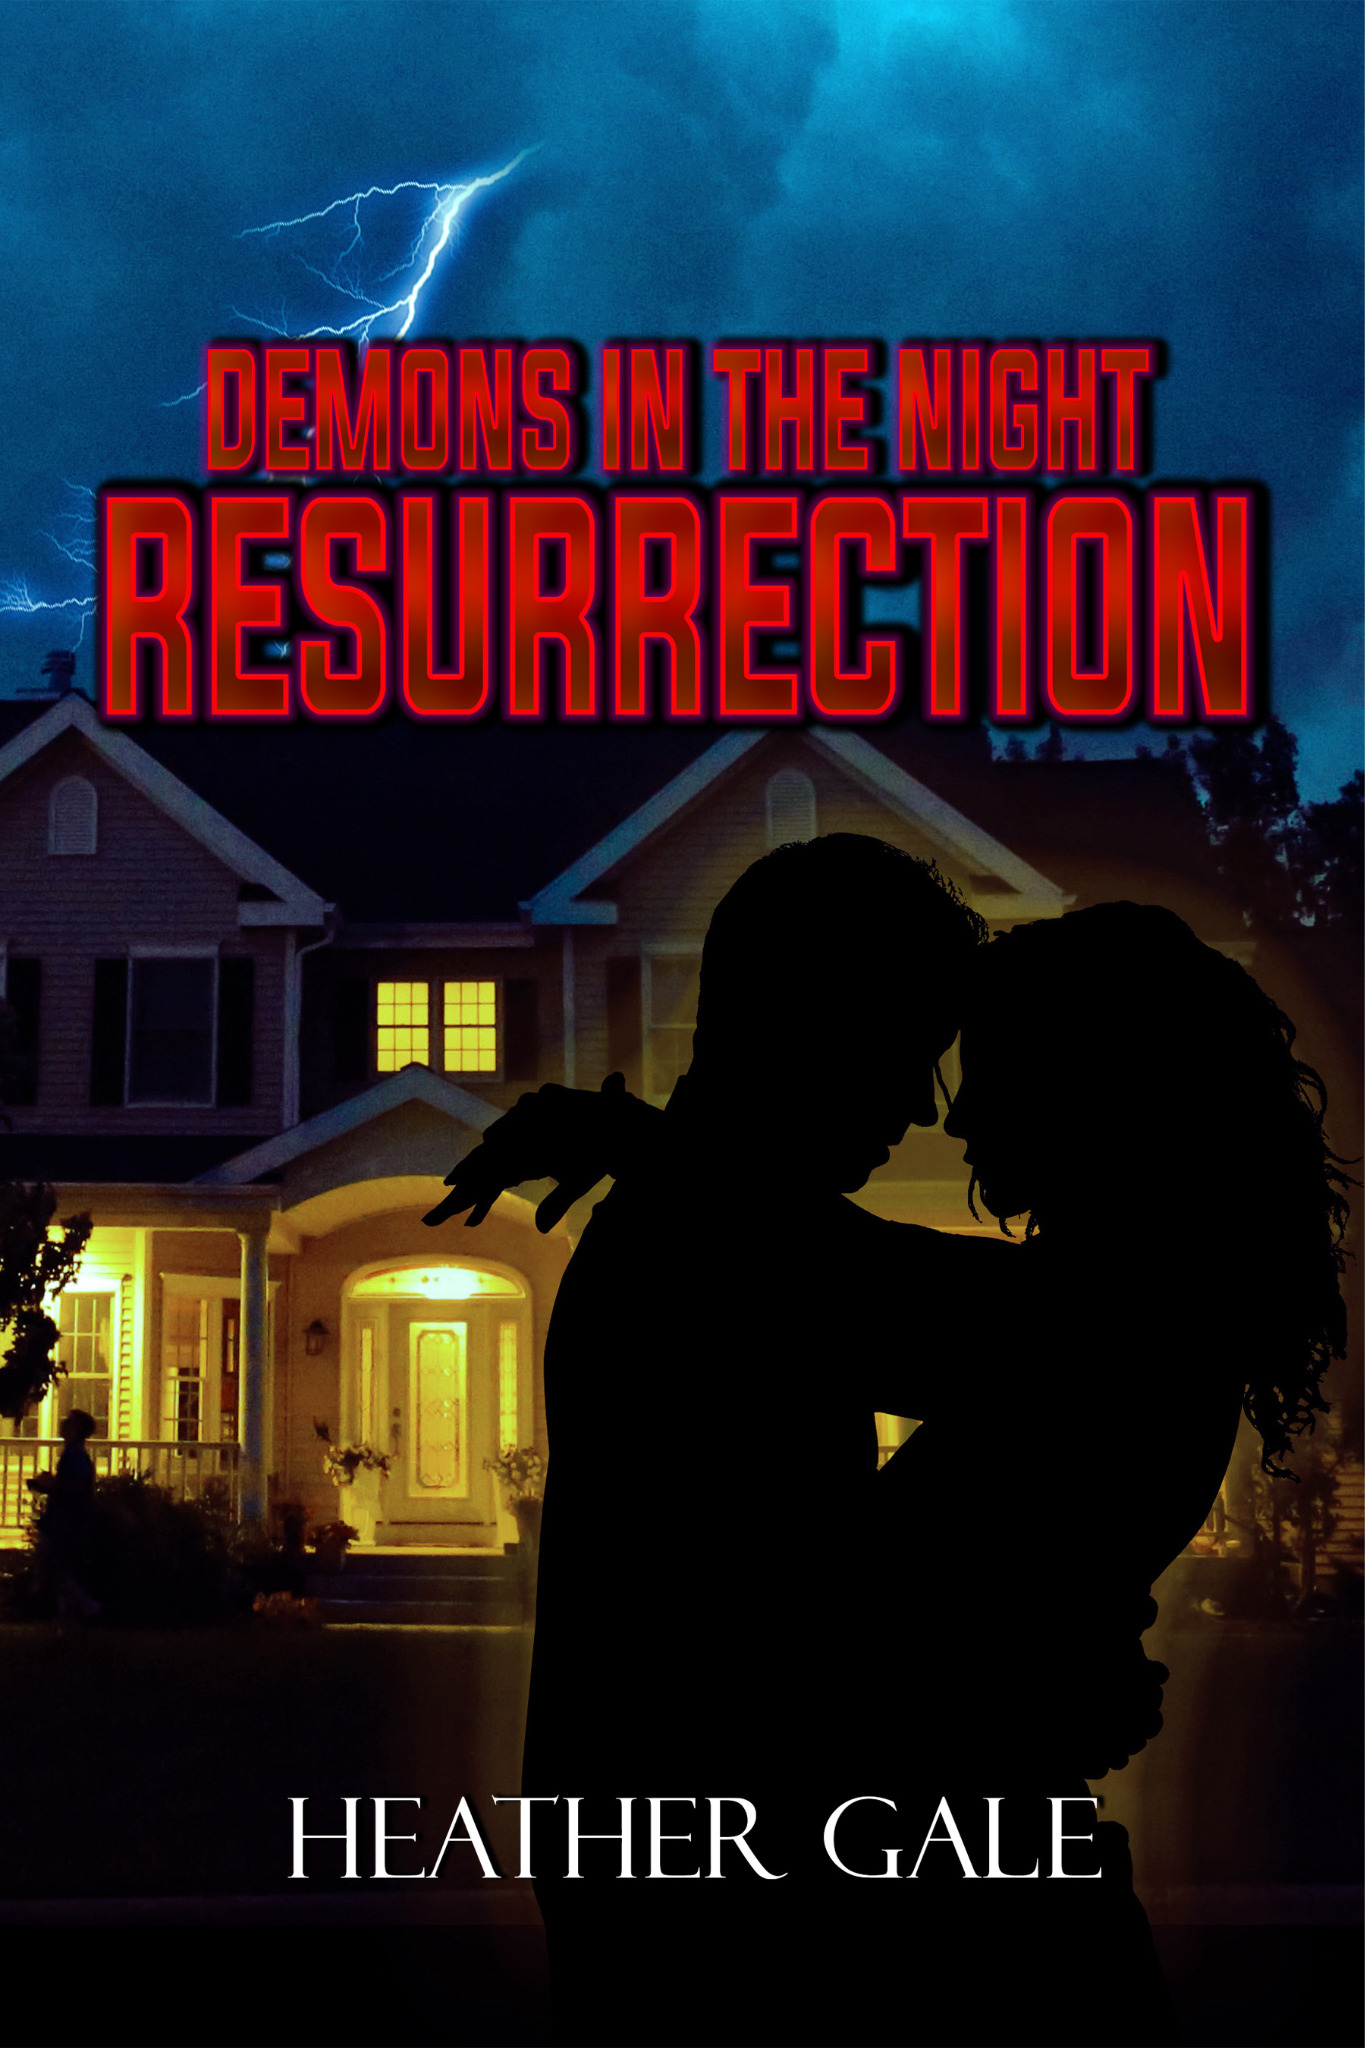 Demons in the Night Resurrection